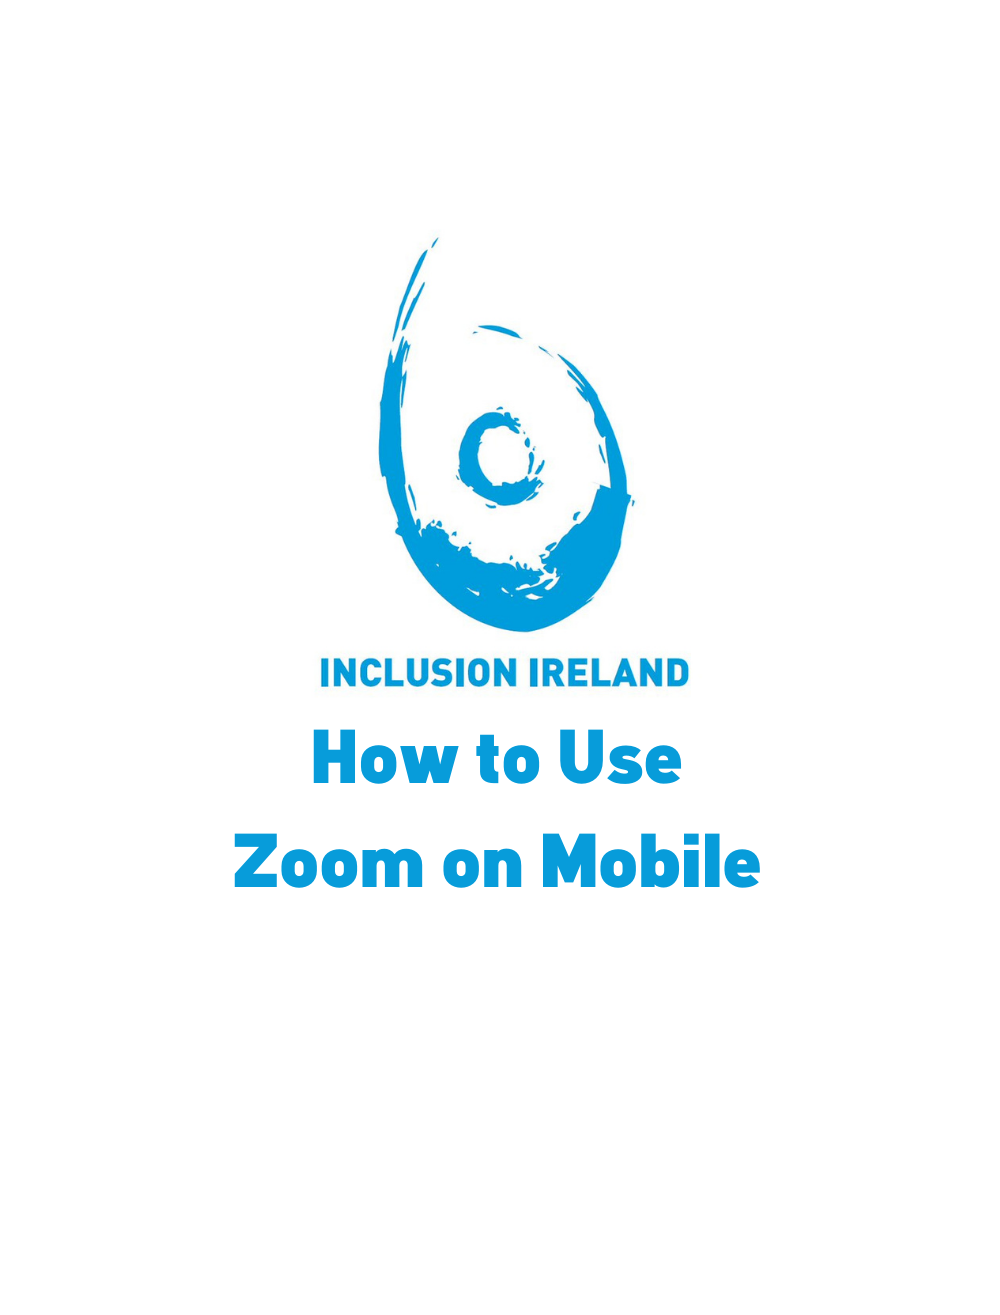 ETR – How to Use Zoom on Mobile